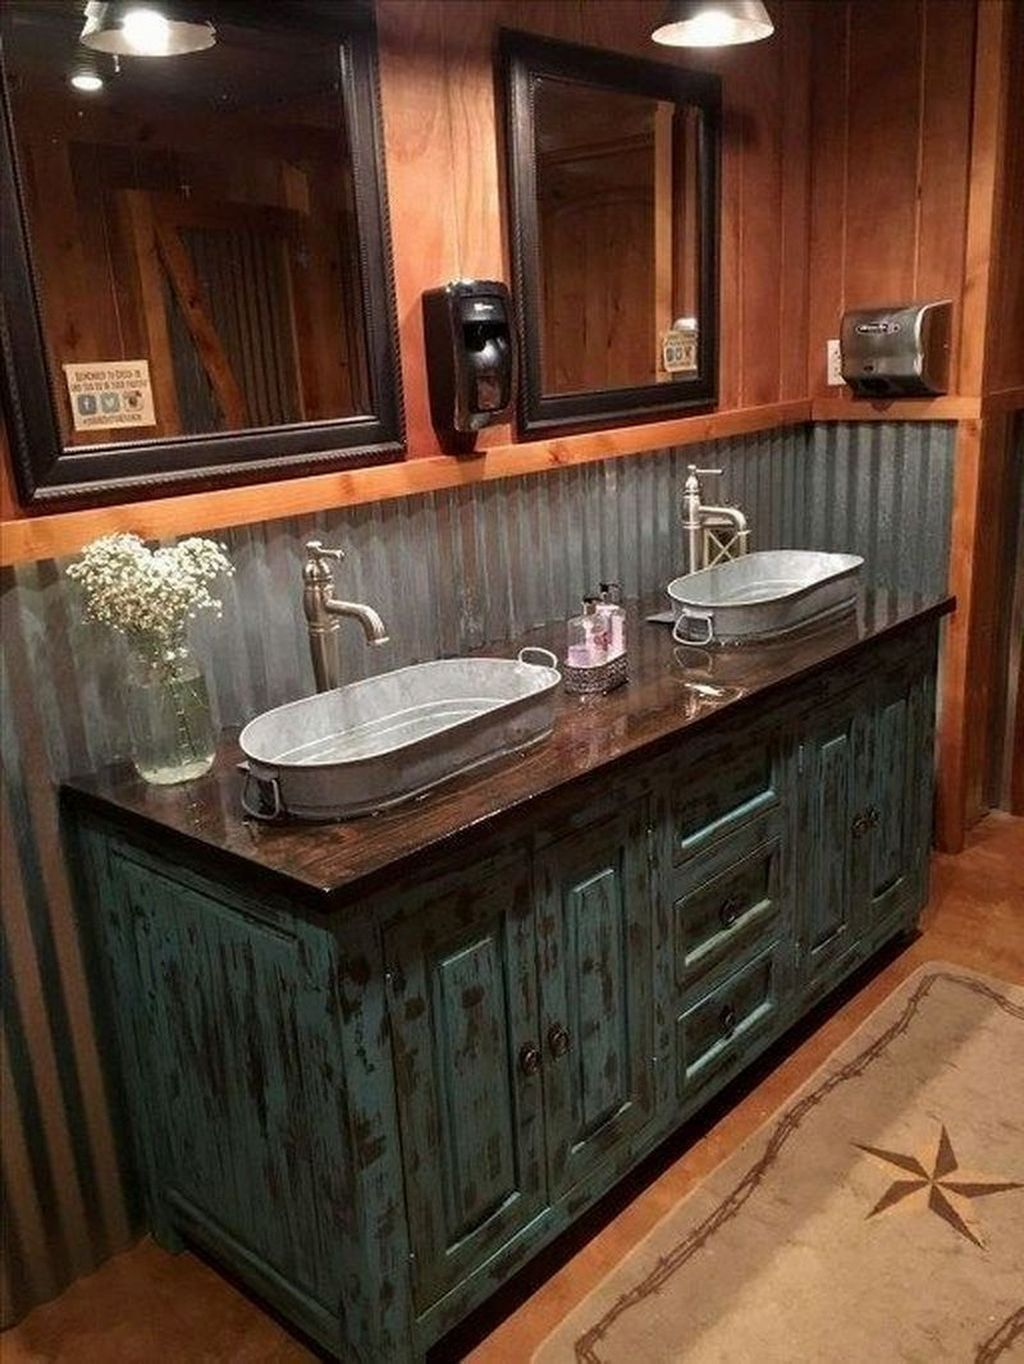 32 Best Small Bathroom Design Ideas And Decorations For 2020: 32 Awesome Rustic Bathroom Decorating Ideas In 2020